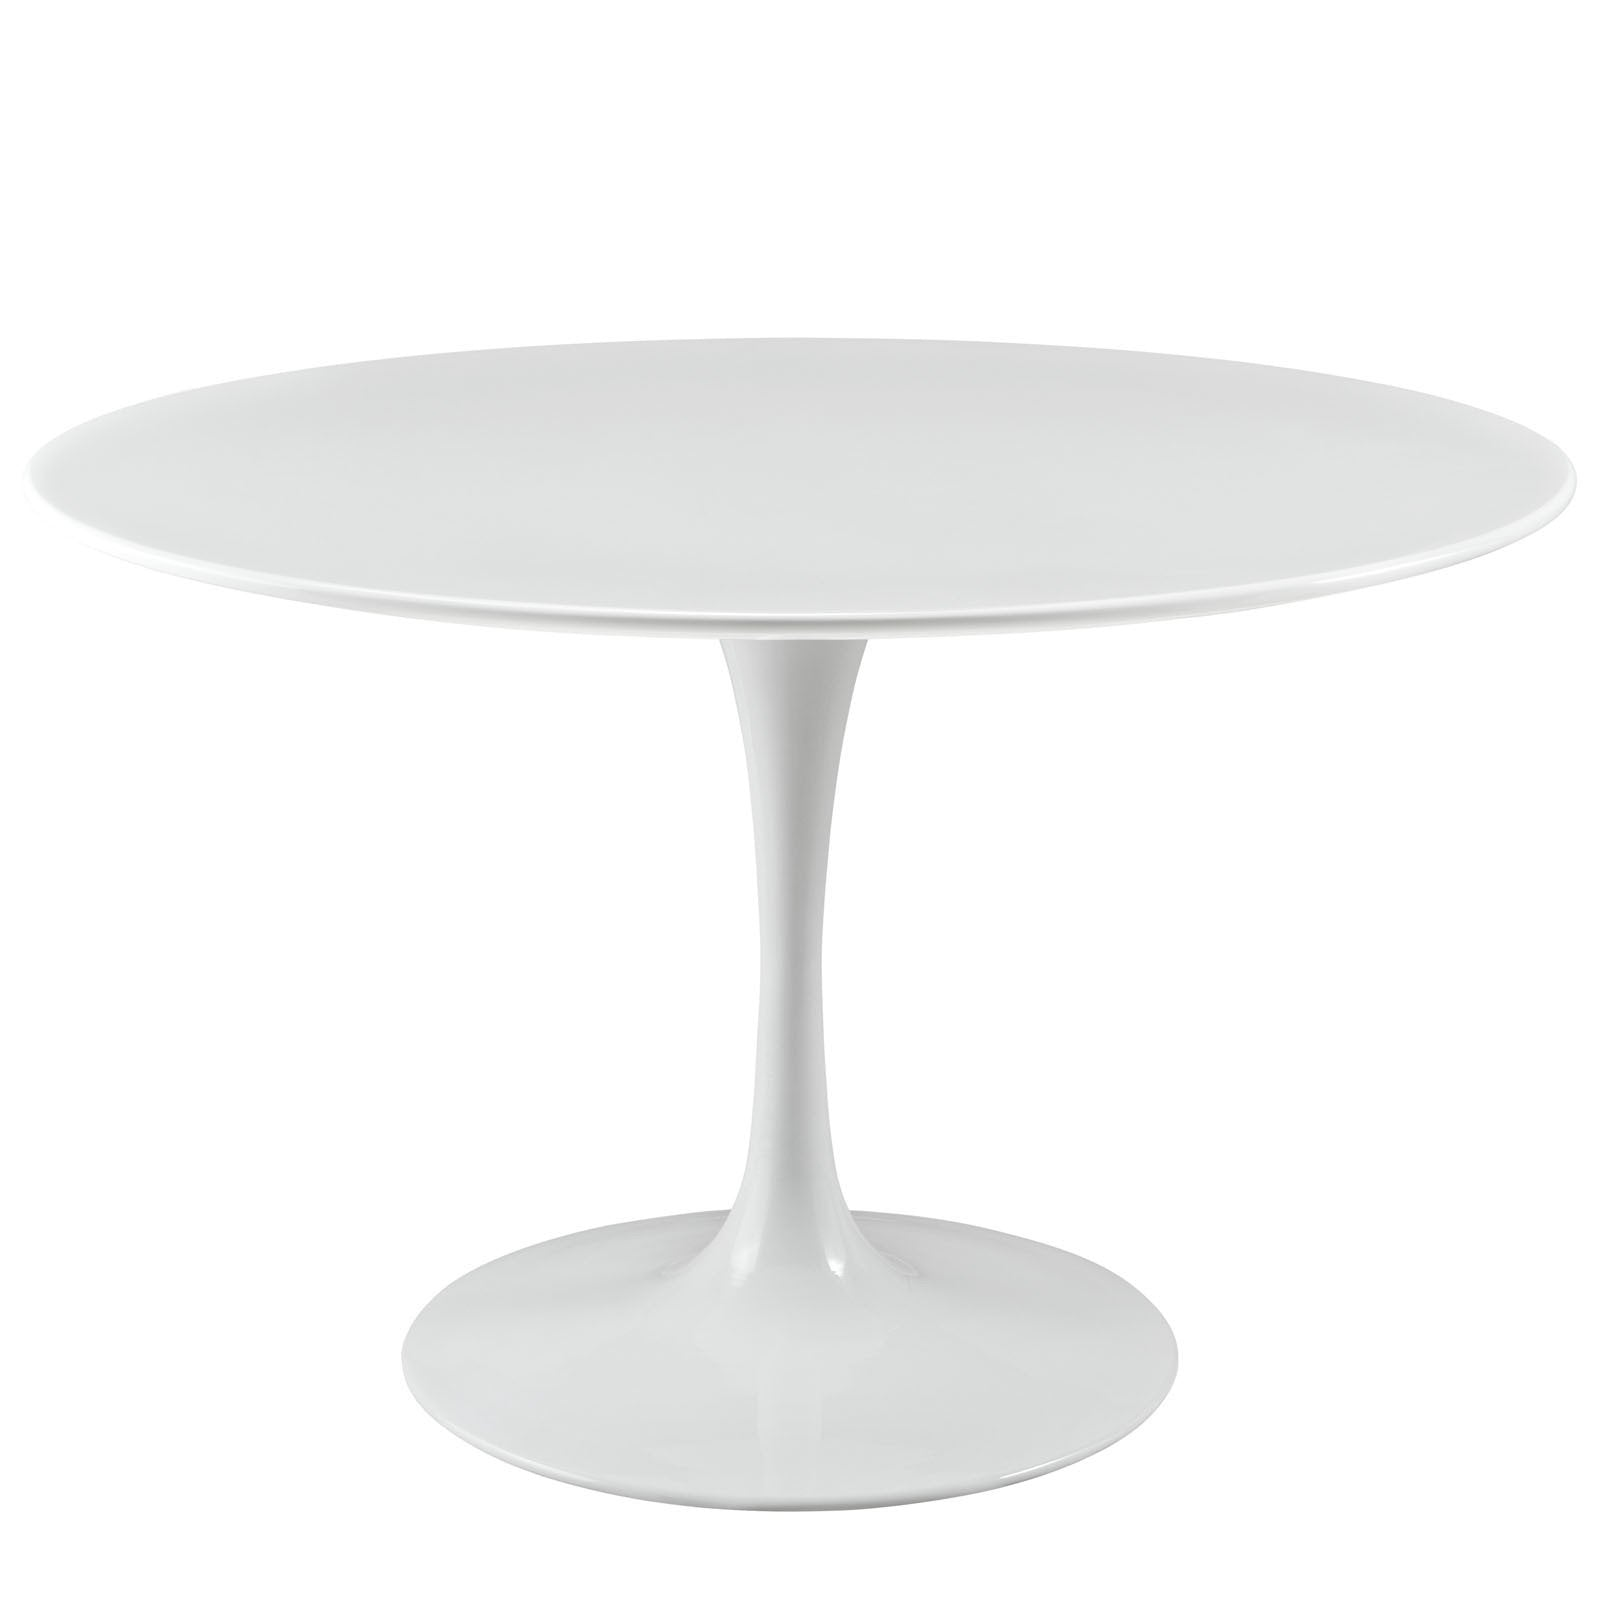 MidCentury Modern Dining Tables EMFURN - Extendable tulip table